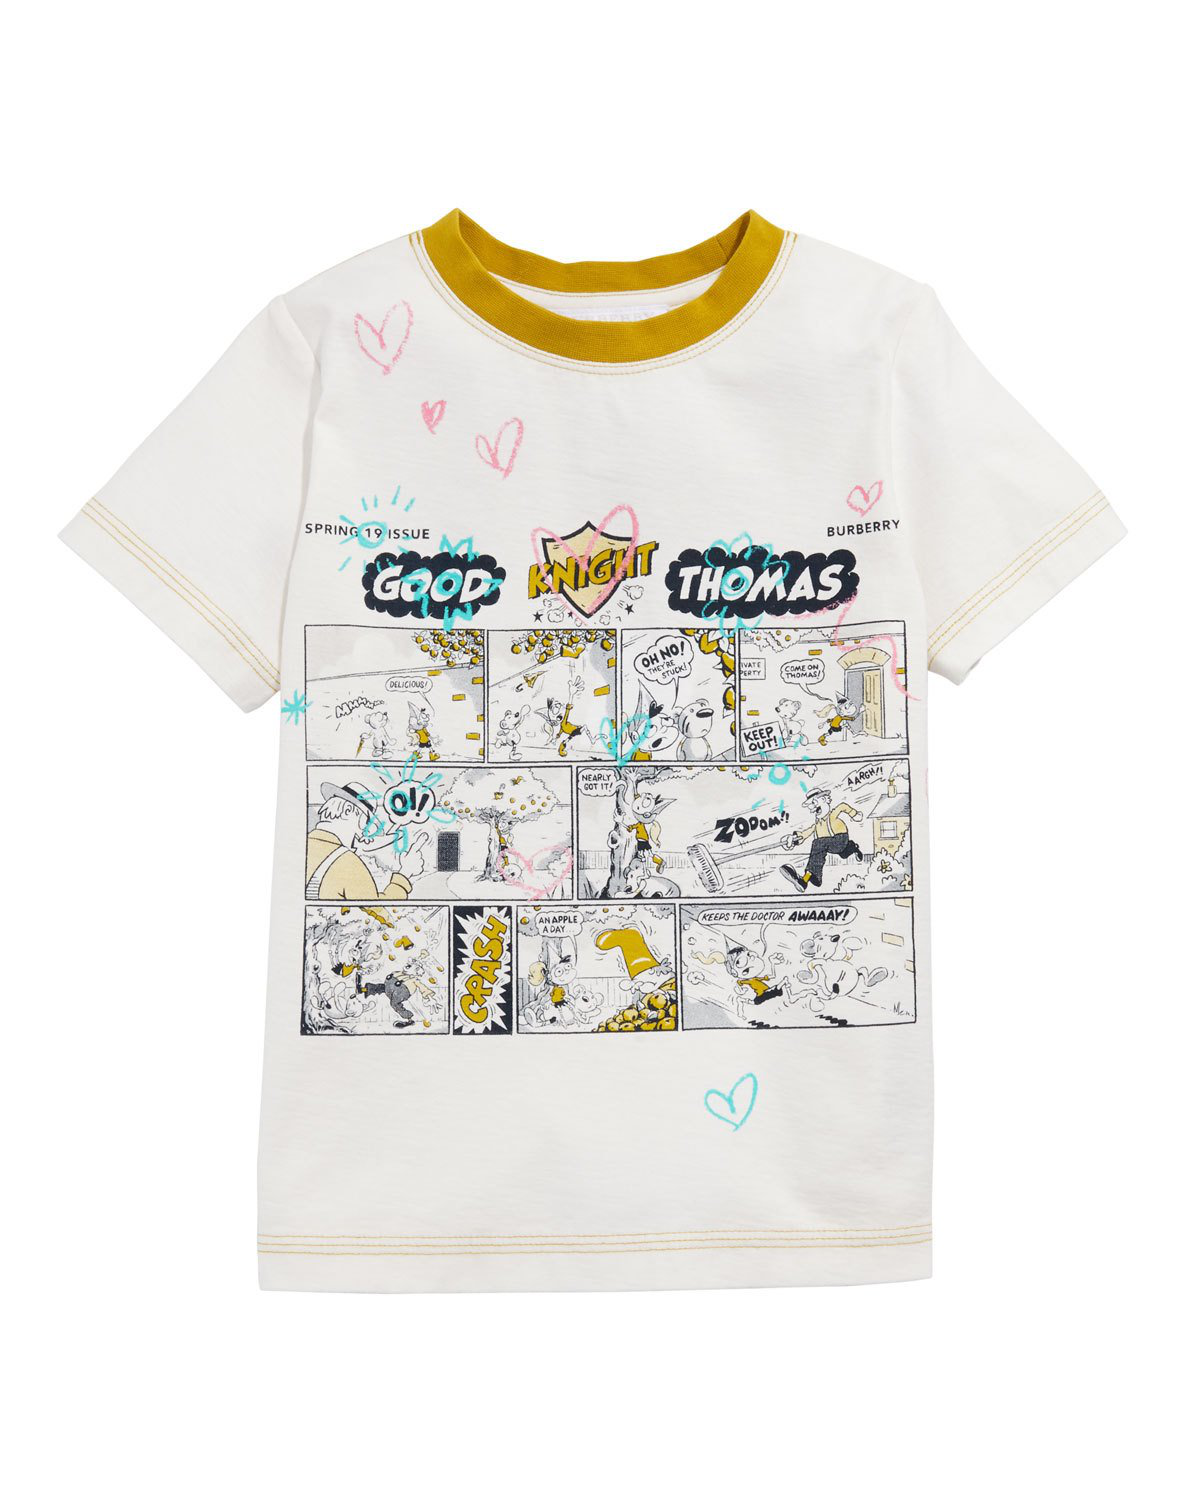 Free Comic Book Day Romania: Burberry Comic Doodle Graphic Tee In White